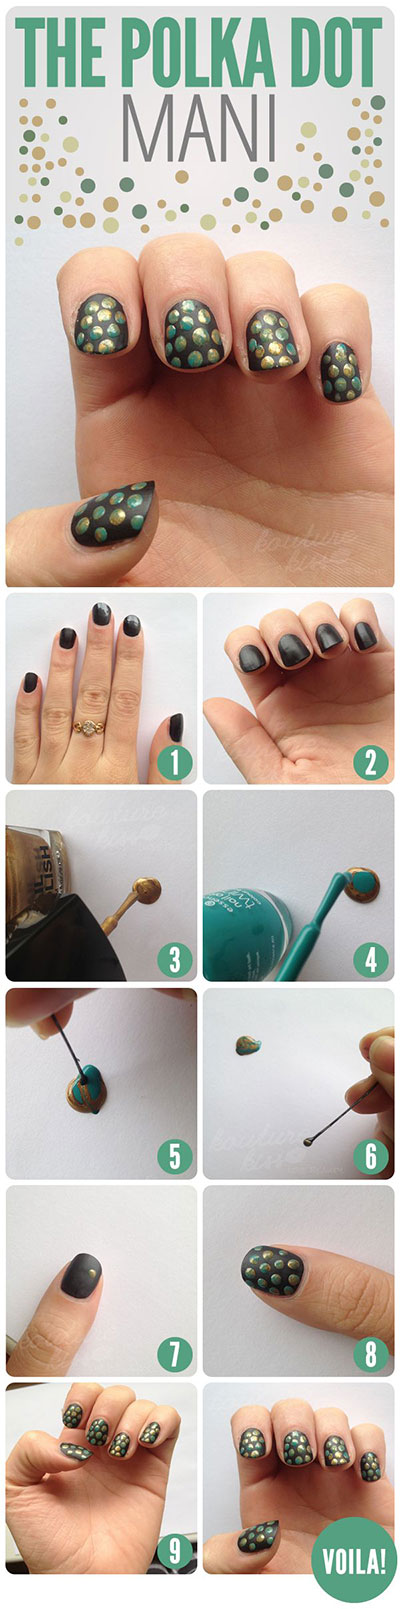 Step-By-Step-Nail-Art-Tutorials-For-Beginners-Learners-2013-2014-8